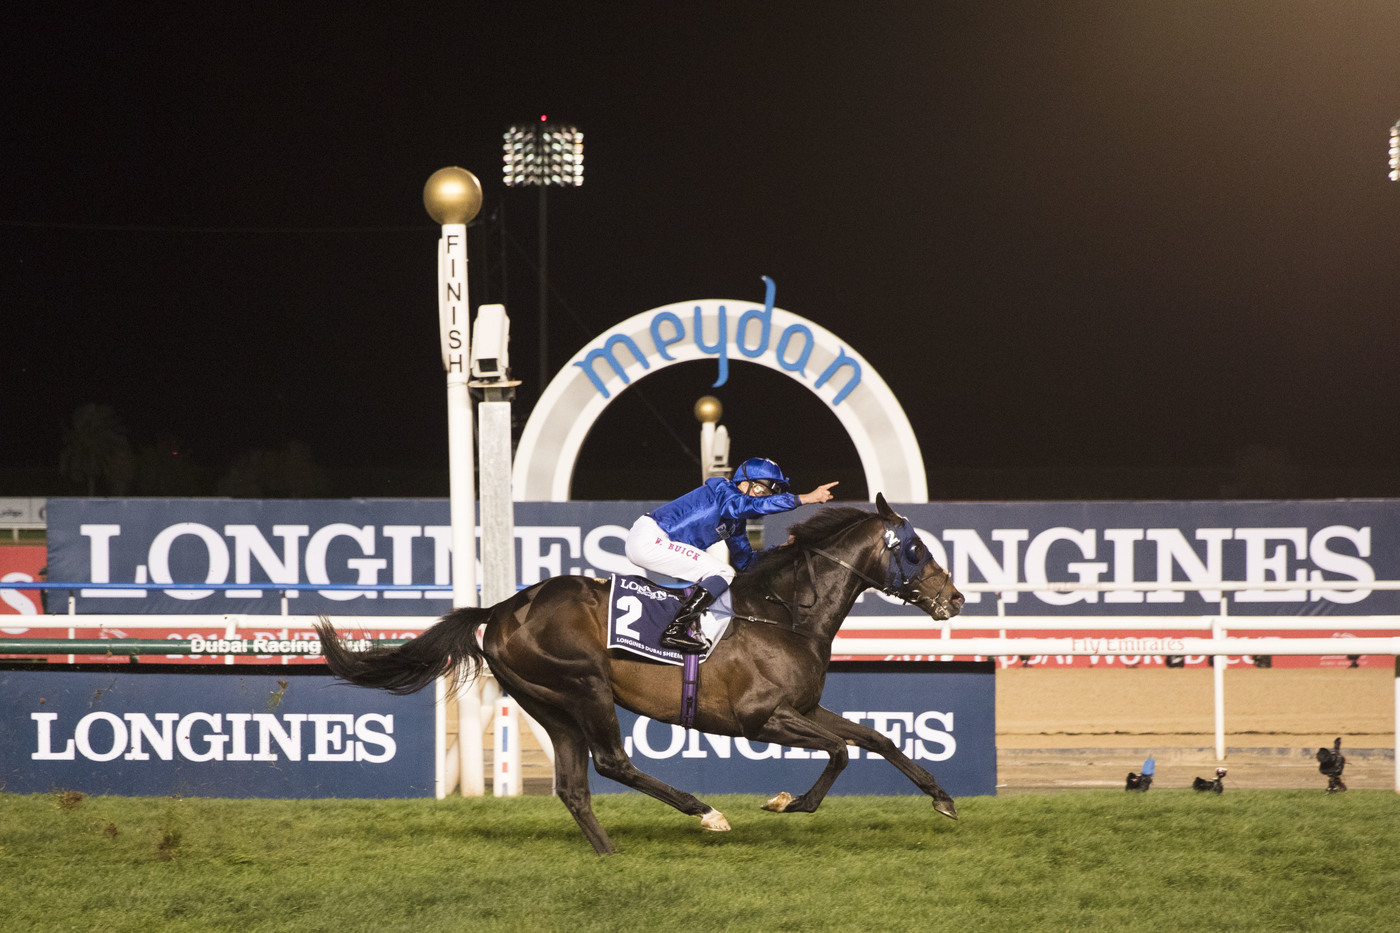 Longines Flat Racing Event: Arrogate, the 2016 Longines World's Best Racehorse, won the Dubai World Cup 1